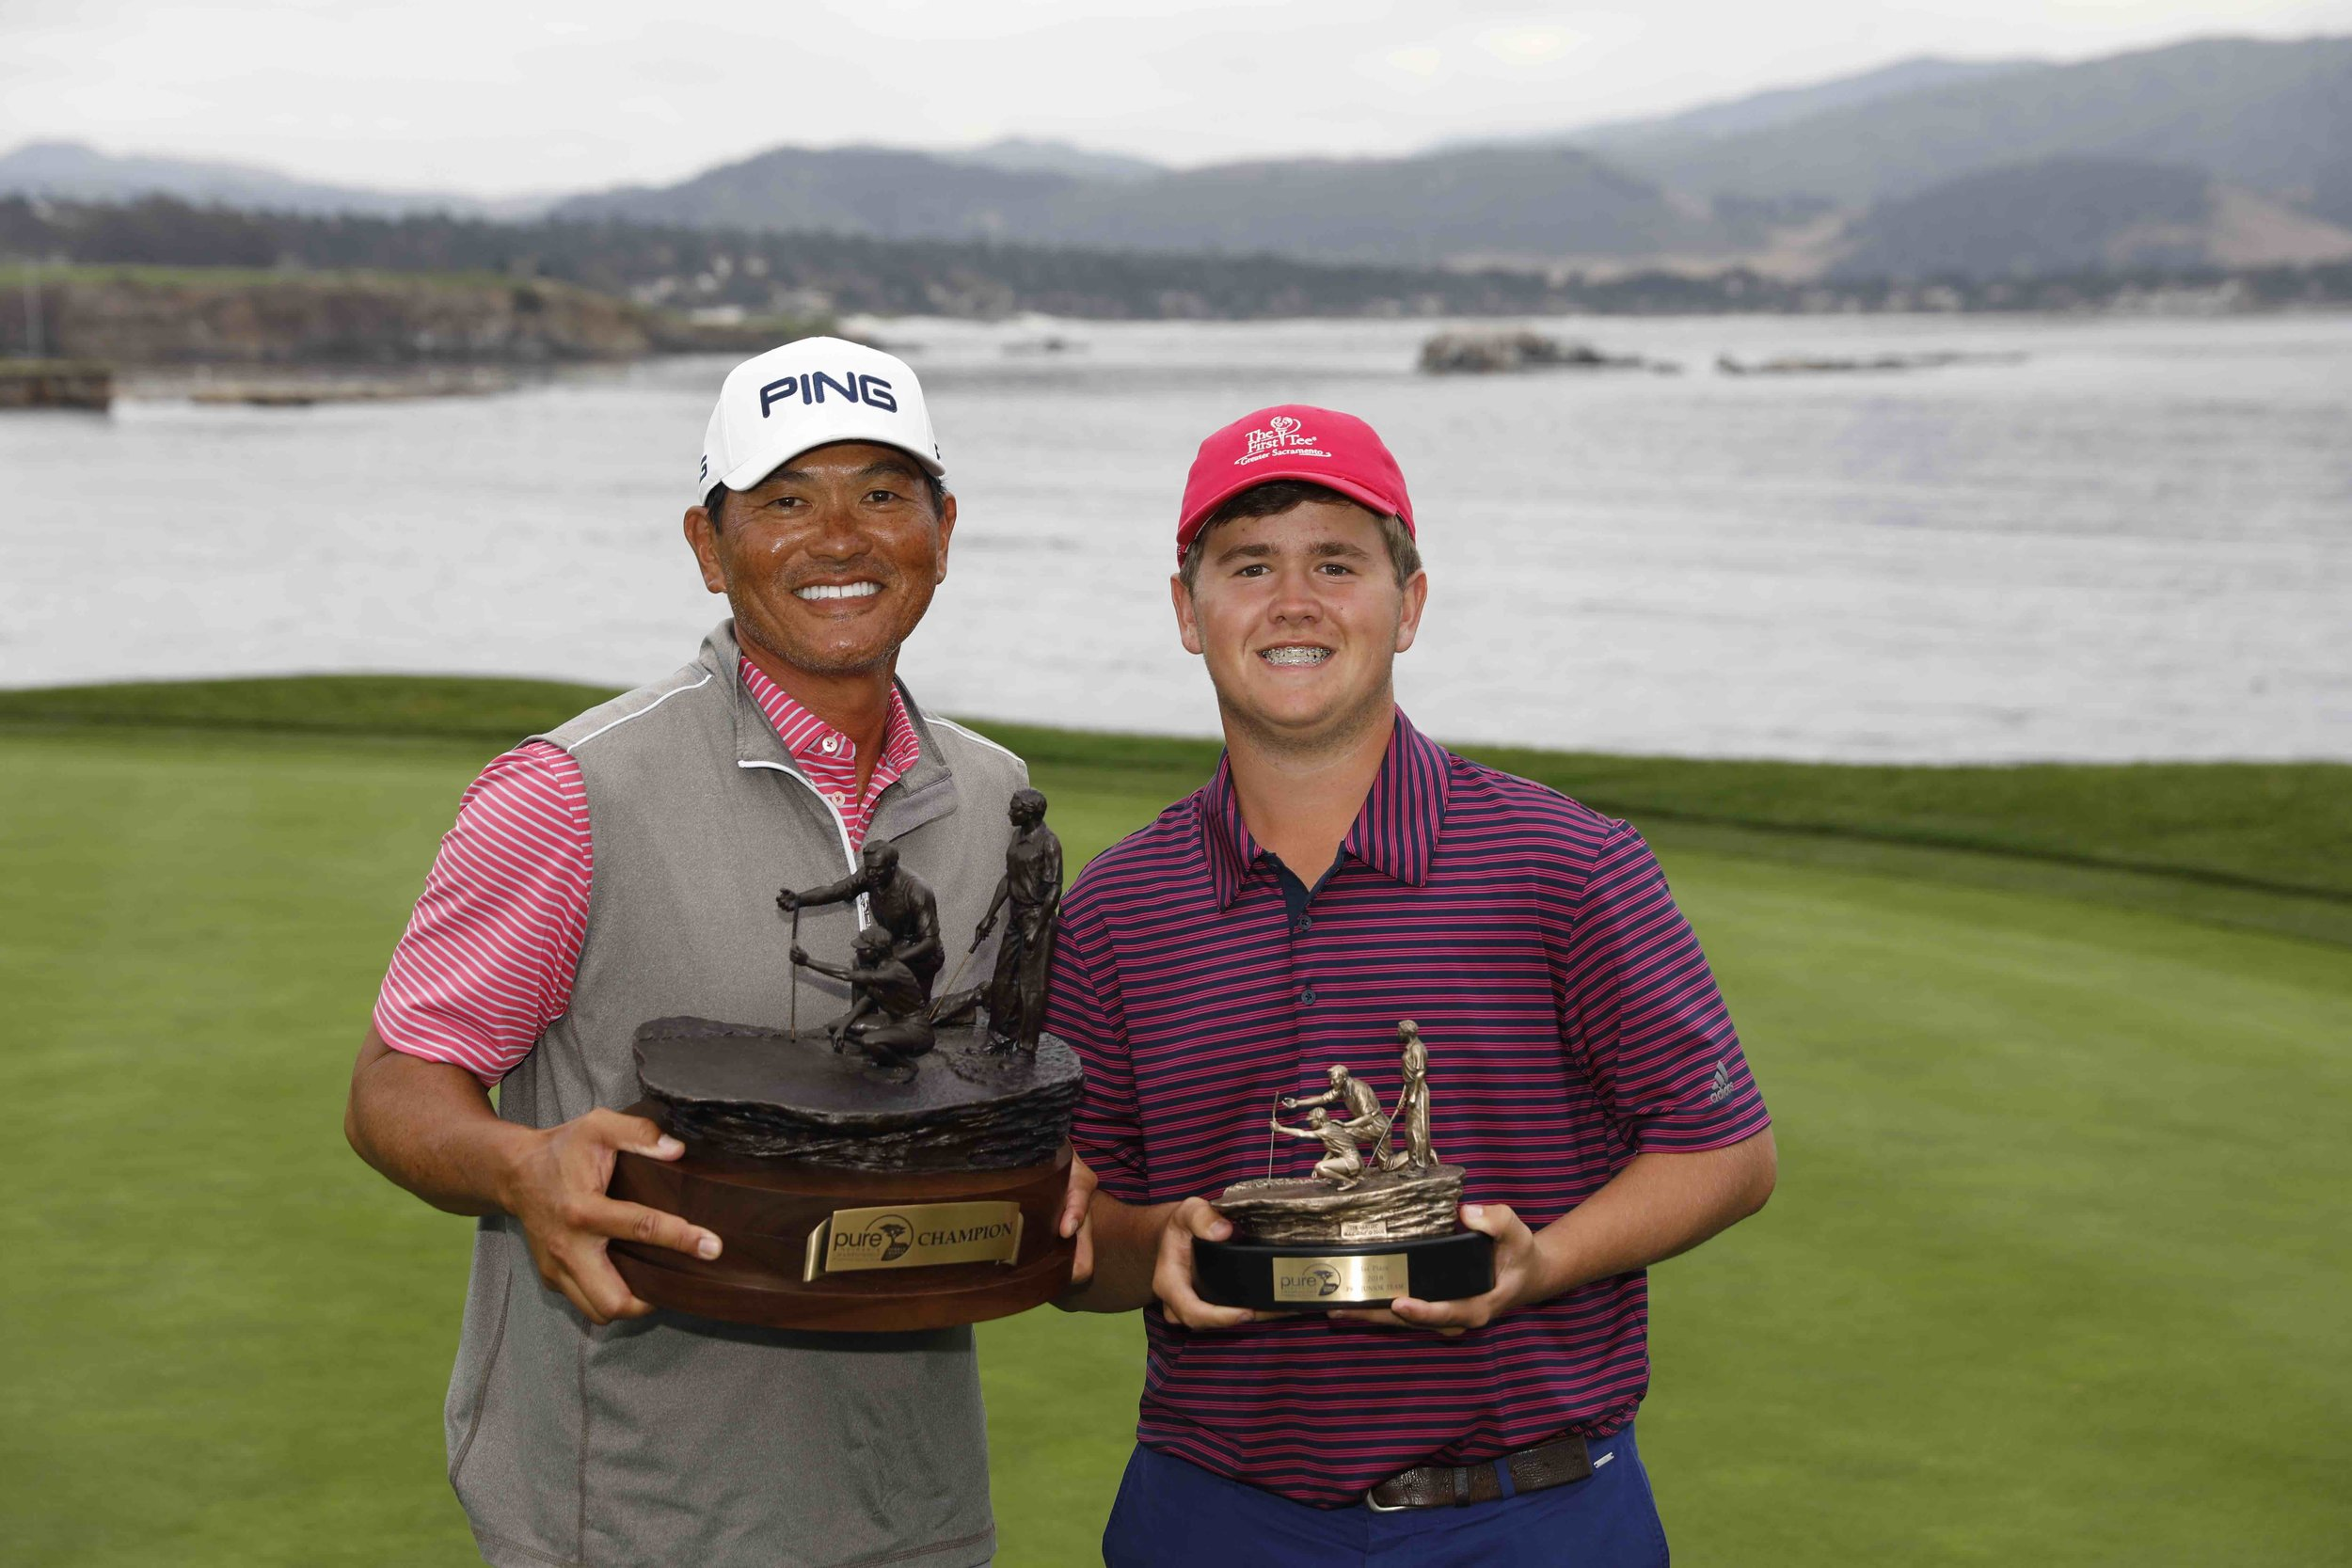 Pro and Junior winners of the 2018 PURE Insurance Championship, from left: Ken Tanigawa and Matthew Sutherland of The First Tee of Greater Sacramento.